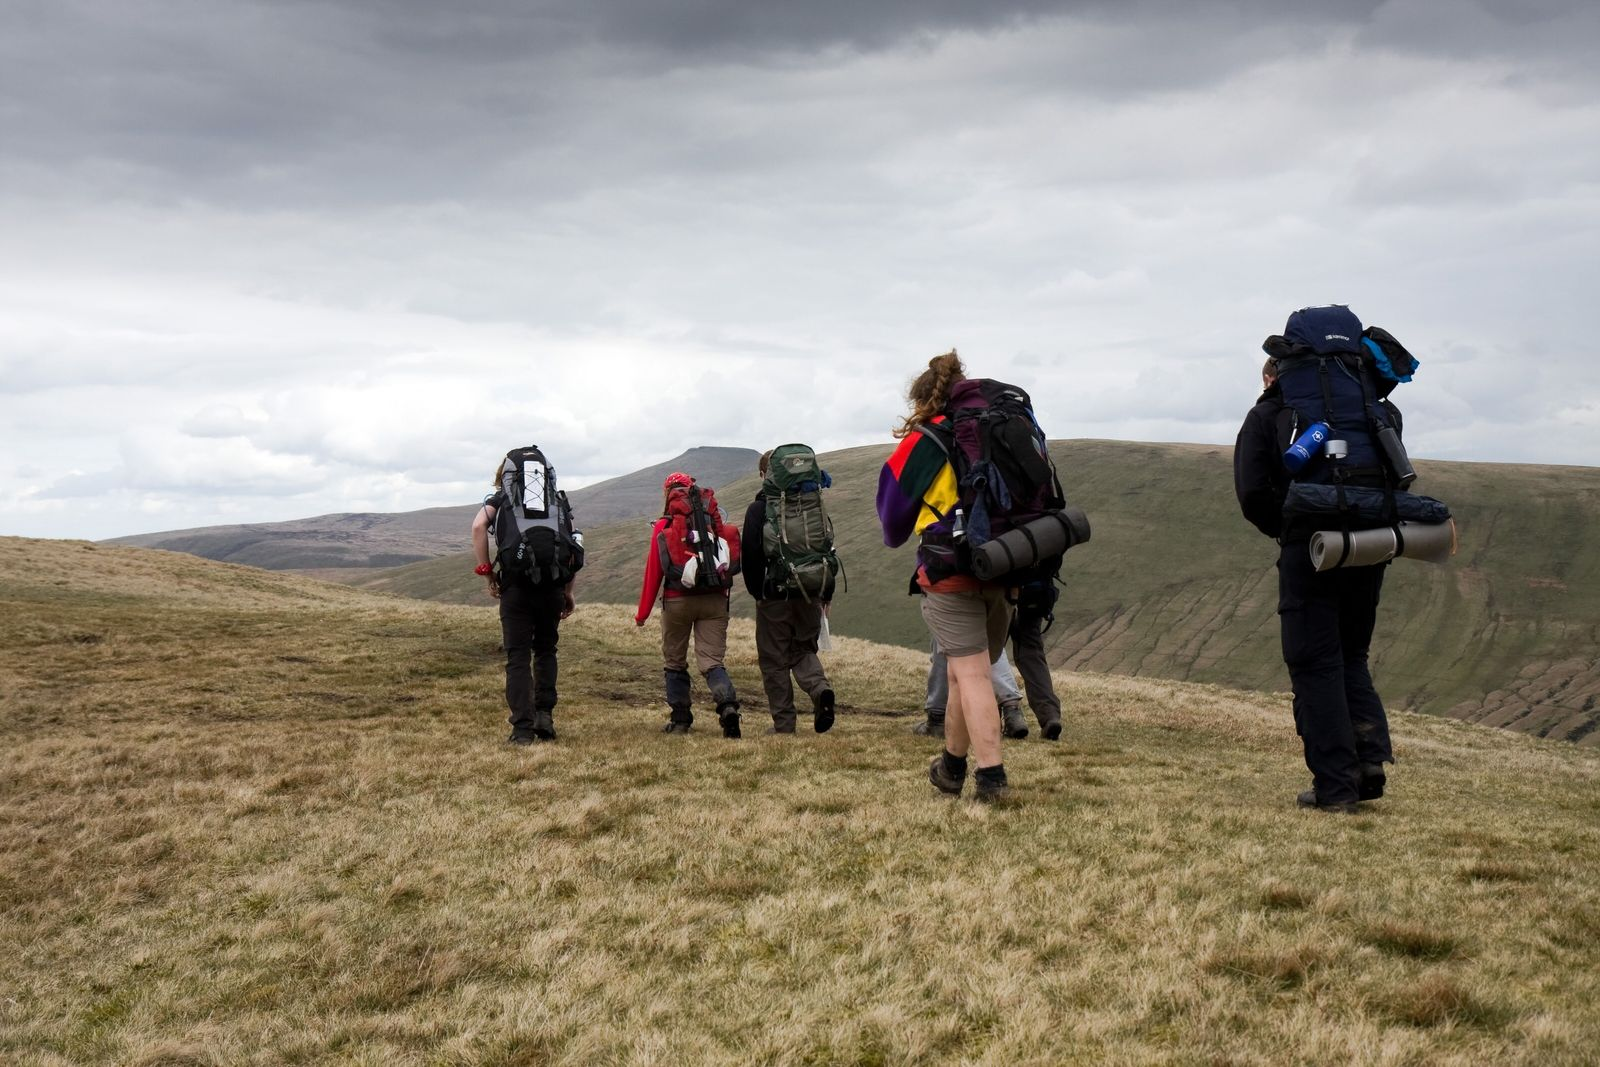 Teenagers tackling the Duke of Edinburgh's Award expedition in the Brecon Beacons, Wales.